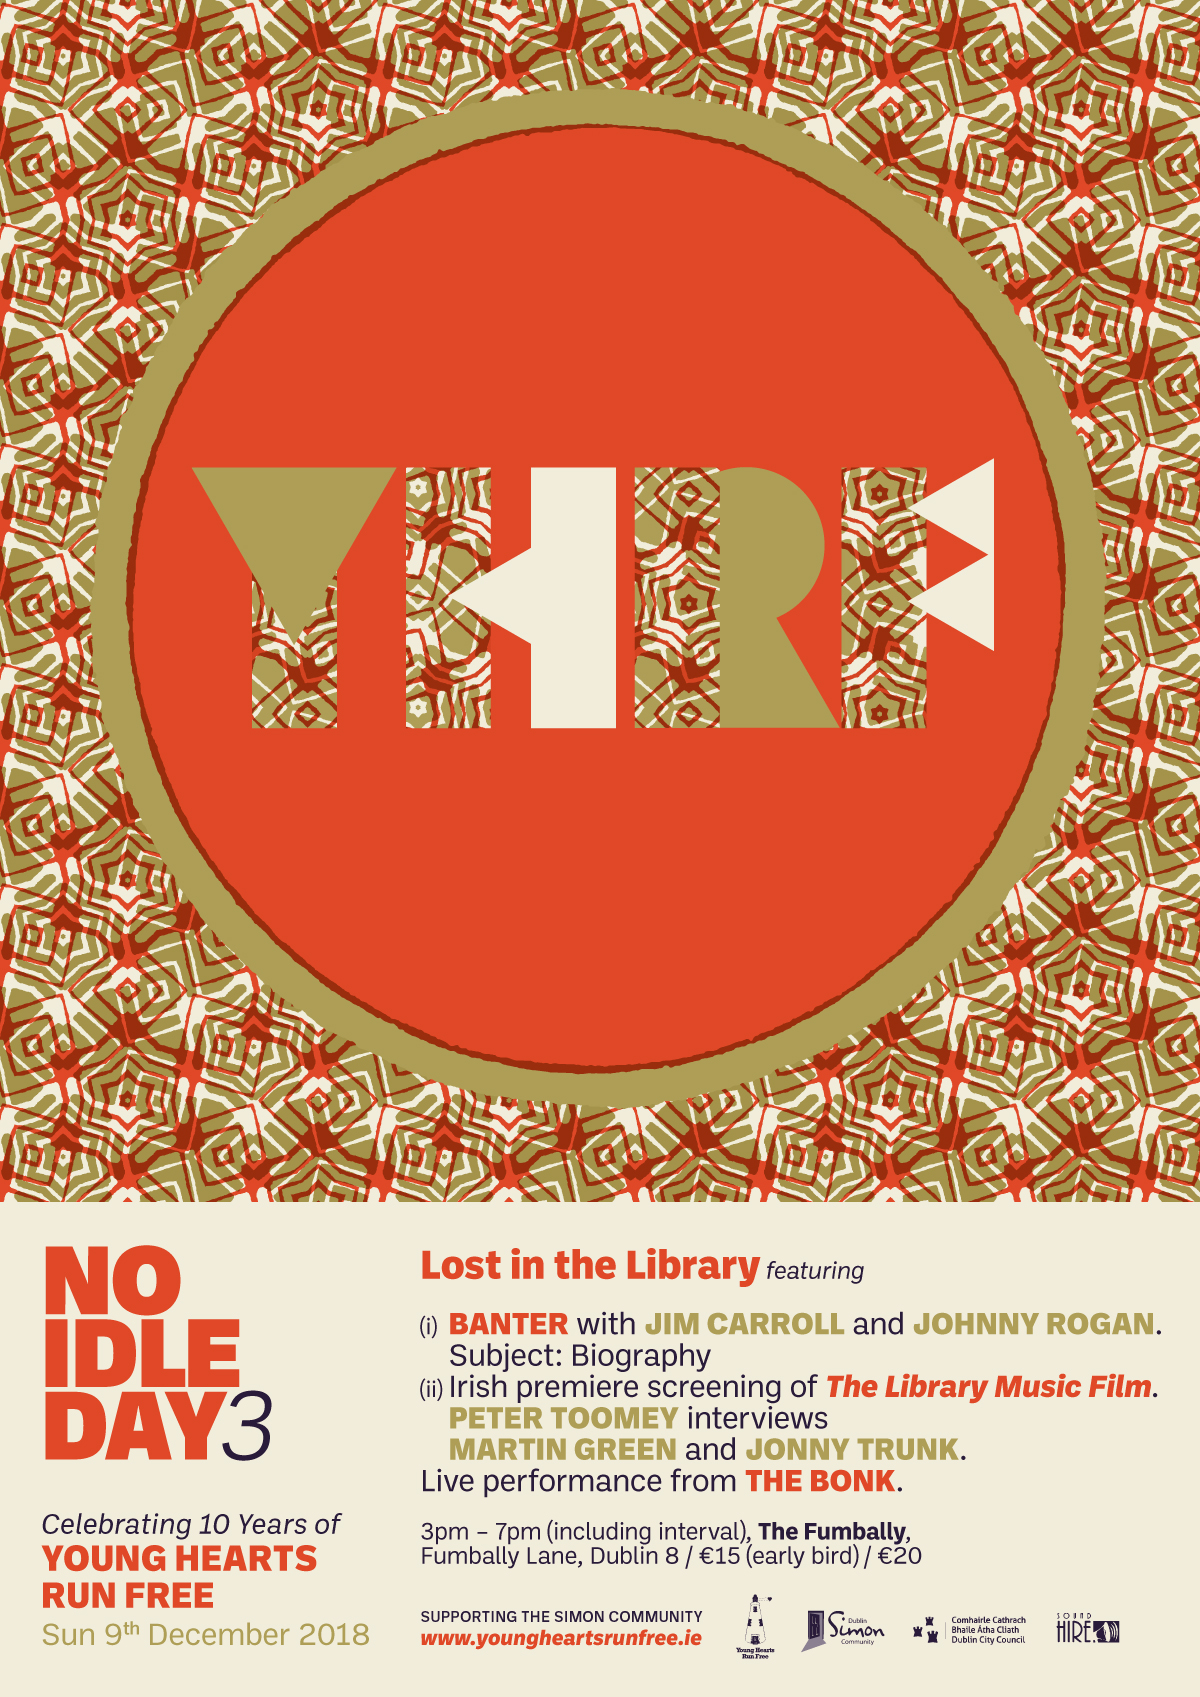 YHRF No Idle Day 3 - LIBRARY POSTER.jpg